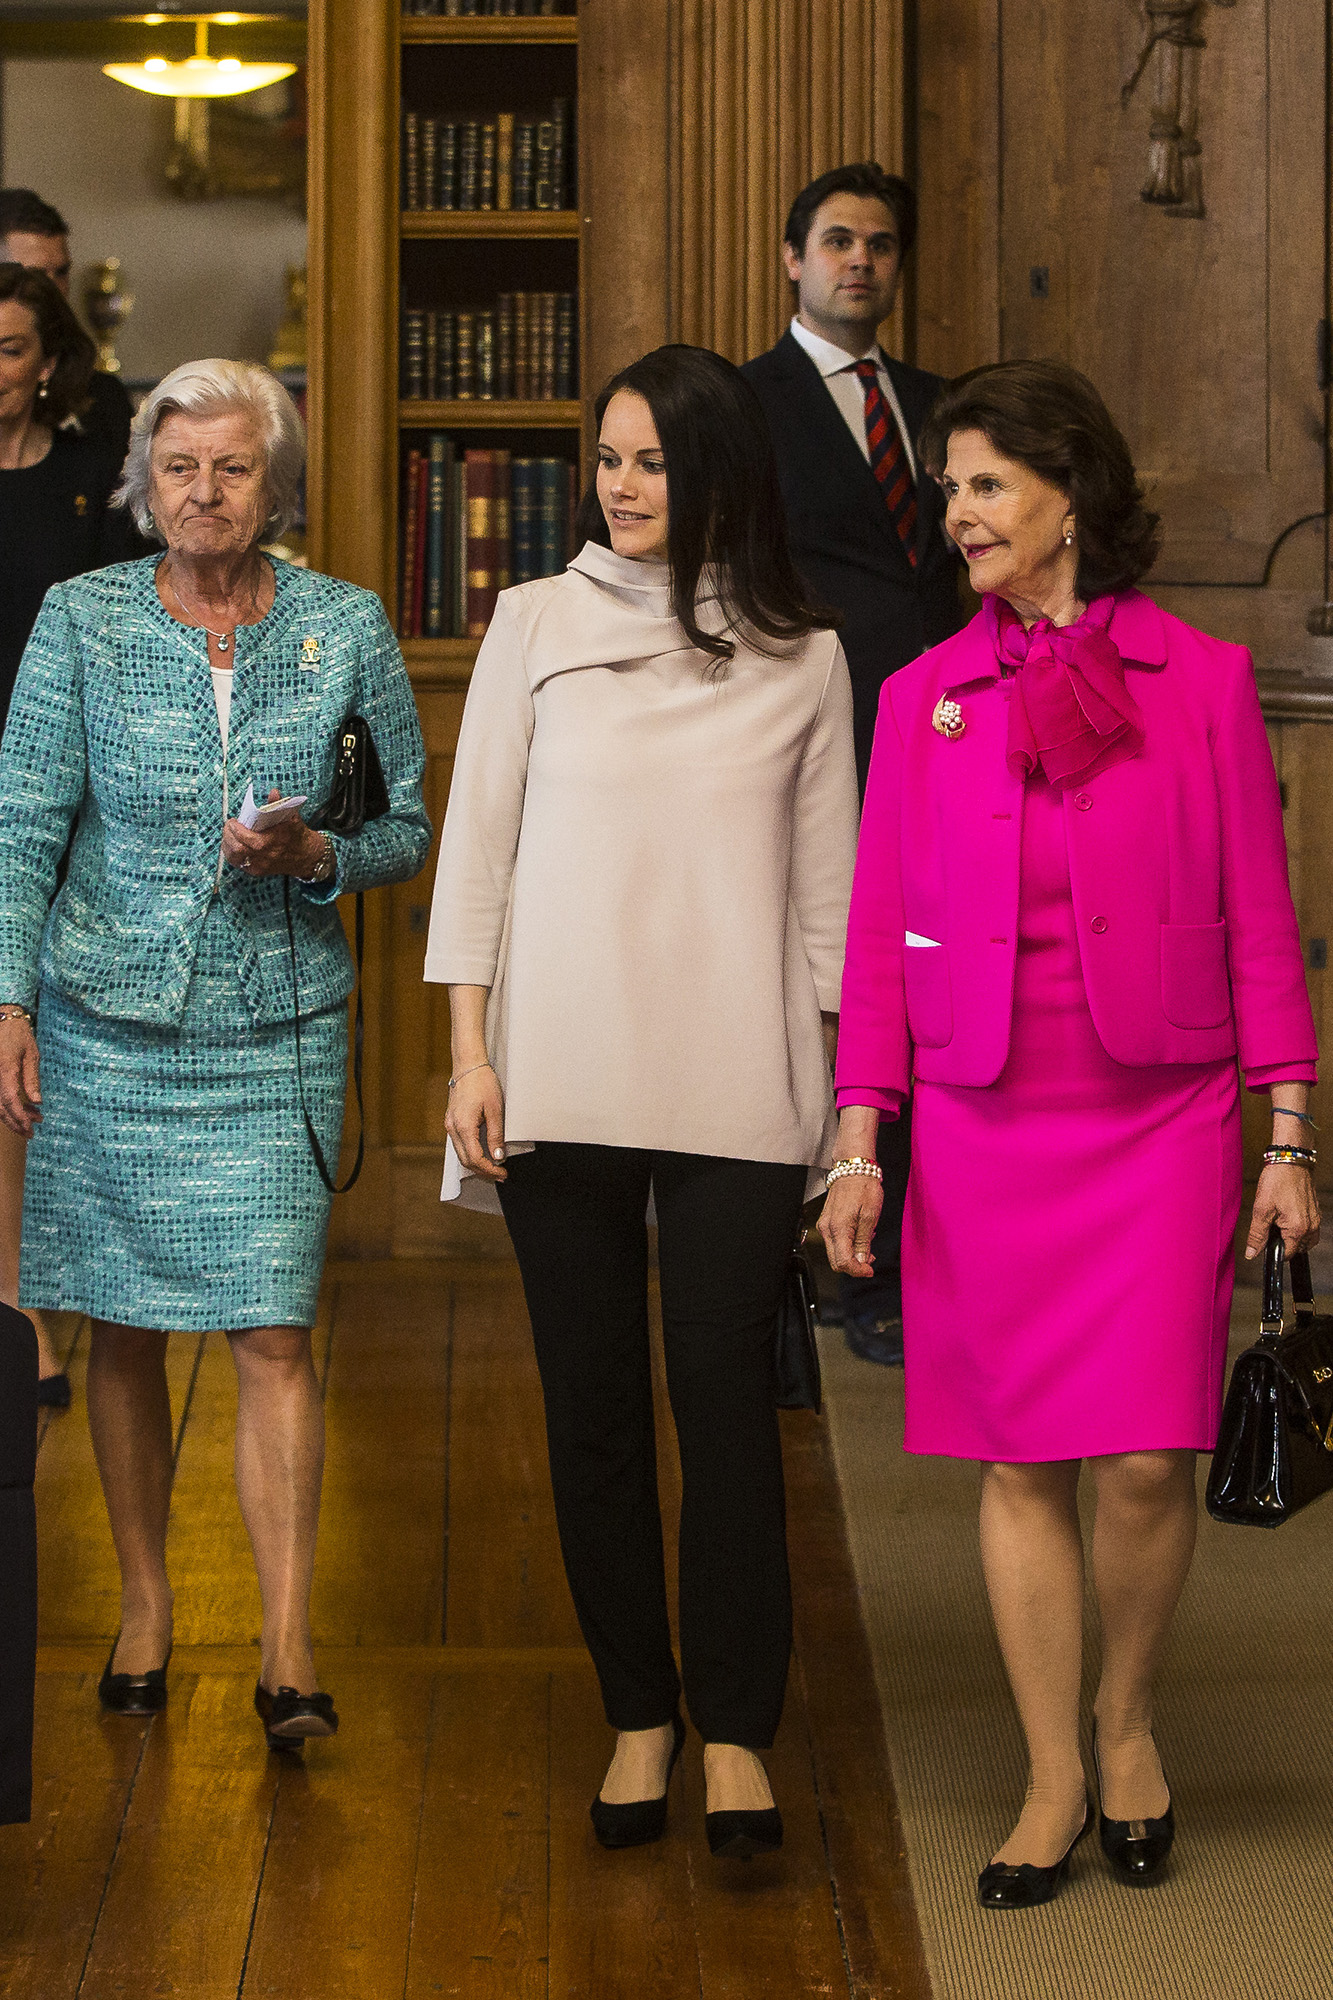 Royals Attend Dementia Forum X At Stockholm Royal Palace